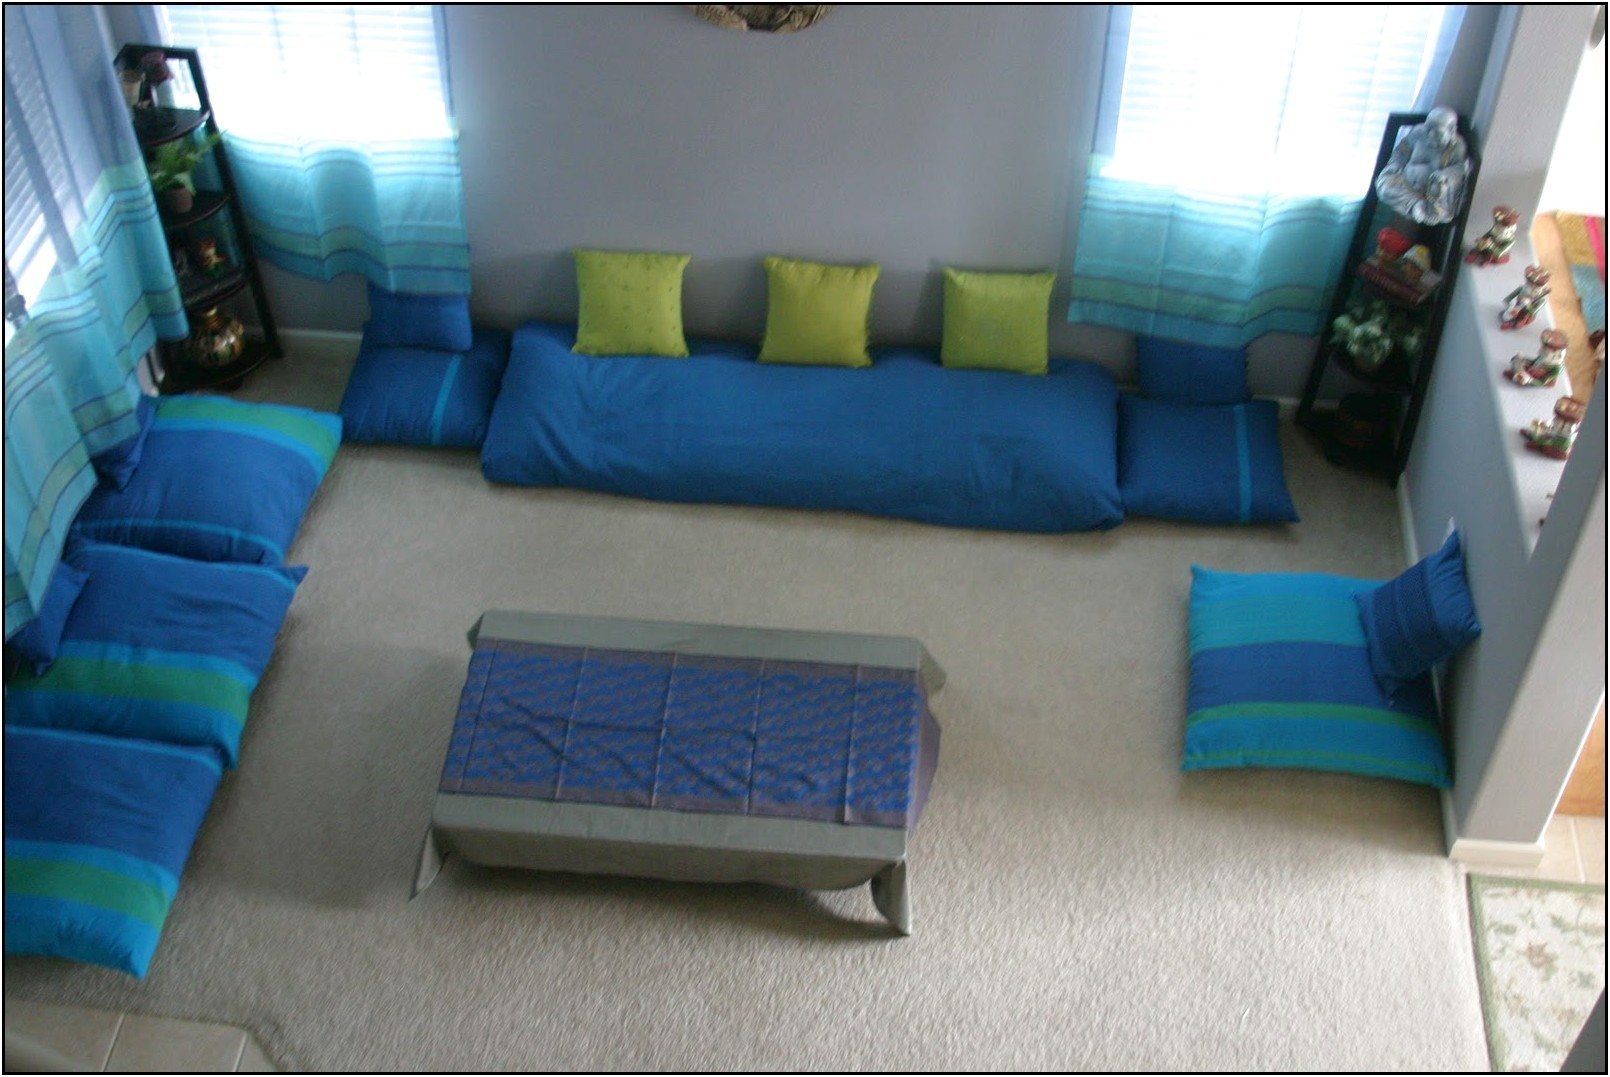 Floor Seating Arrangement Living Room